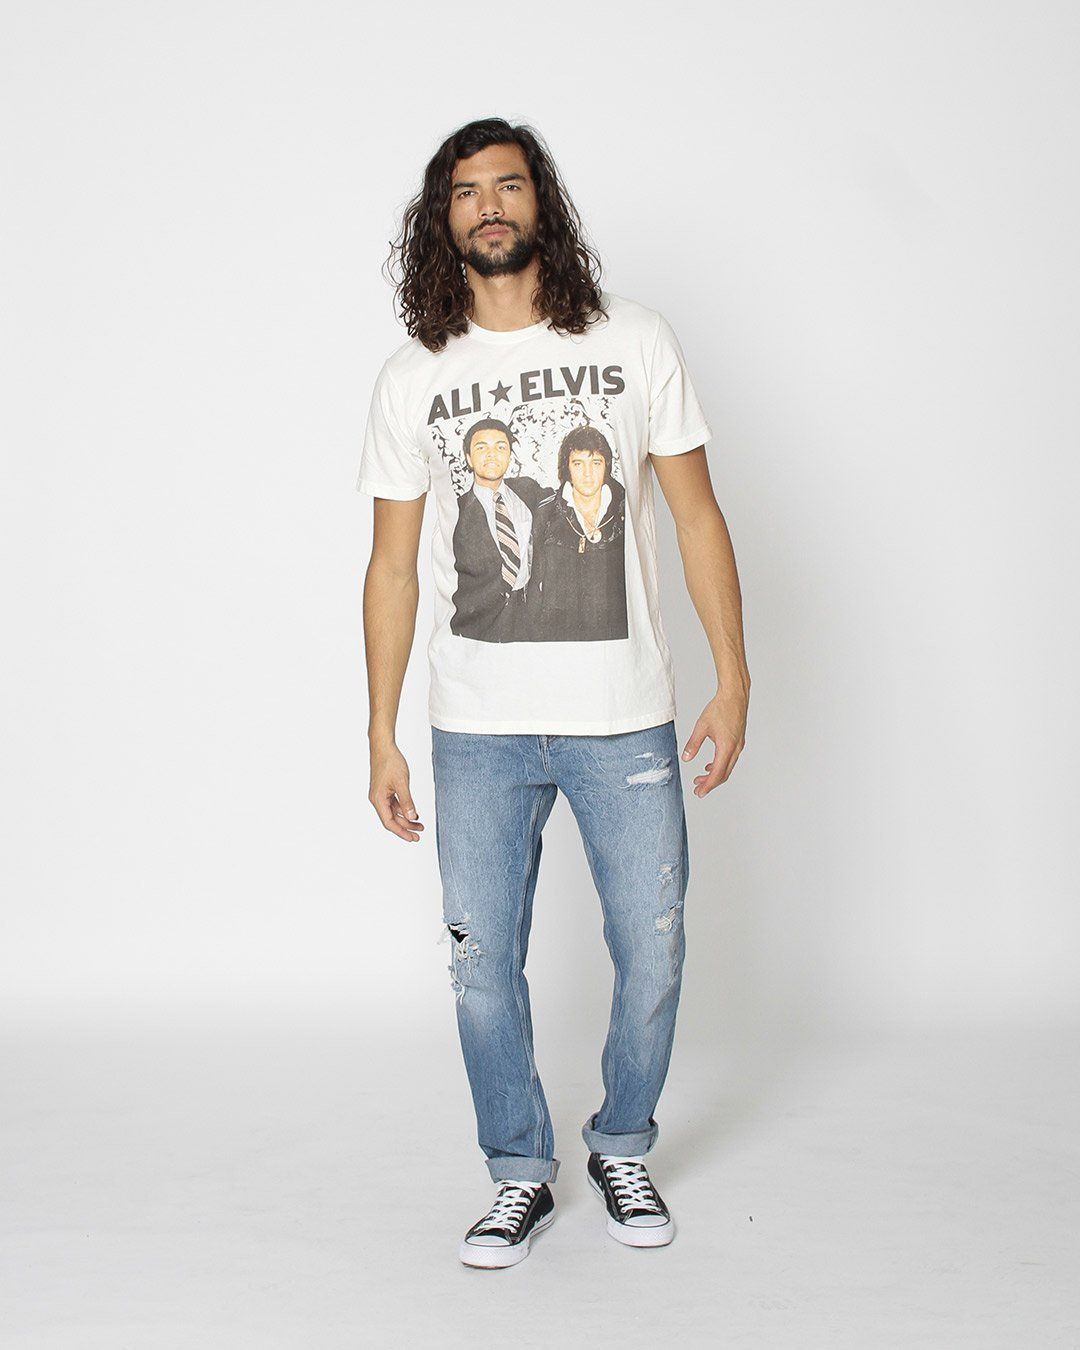 Ali & Elvis Portrait Tee - Roots of Inc dba Roots of Fight